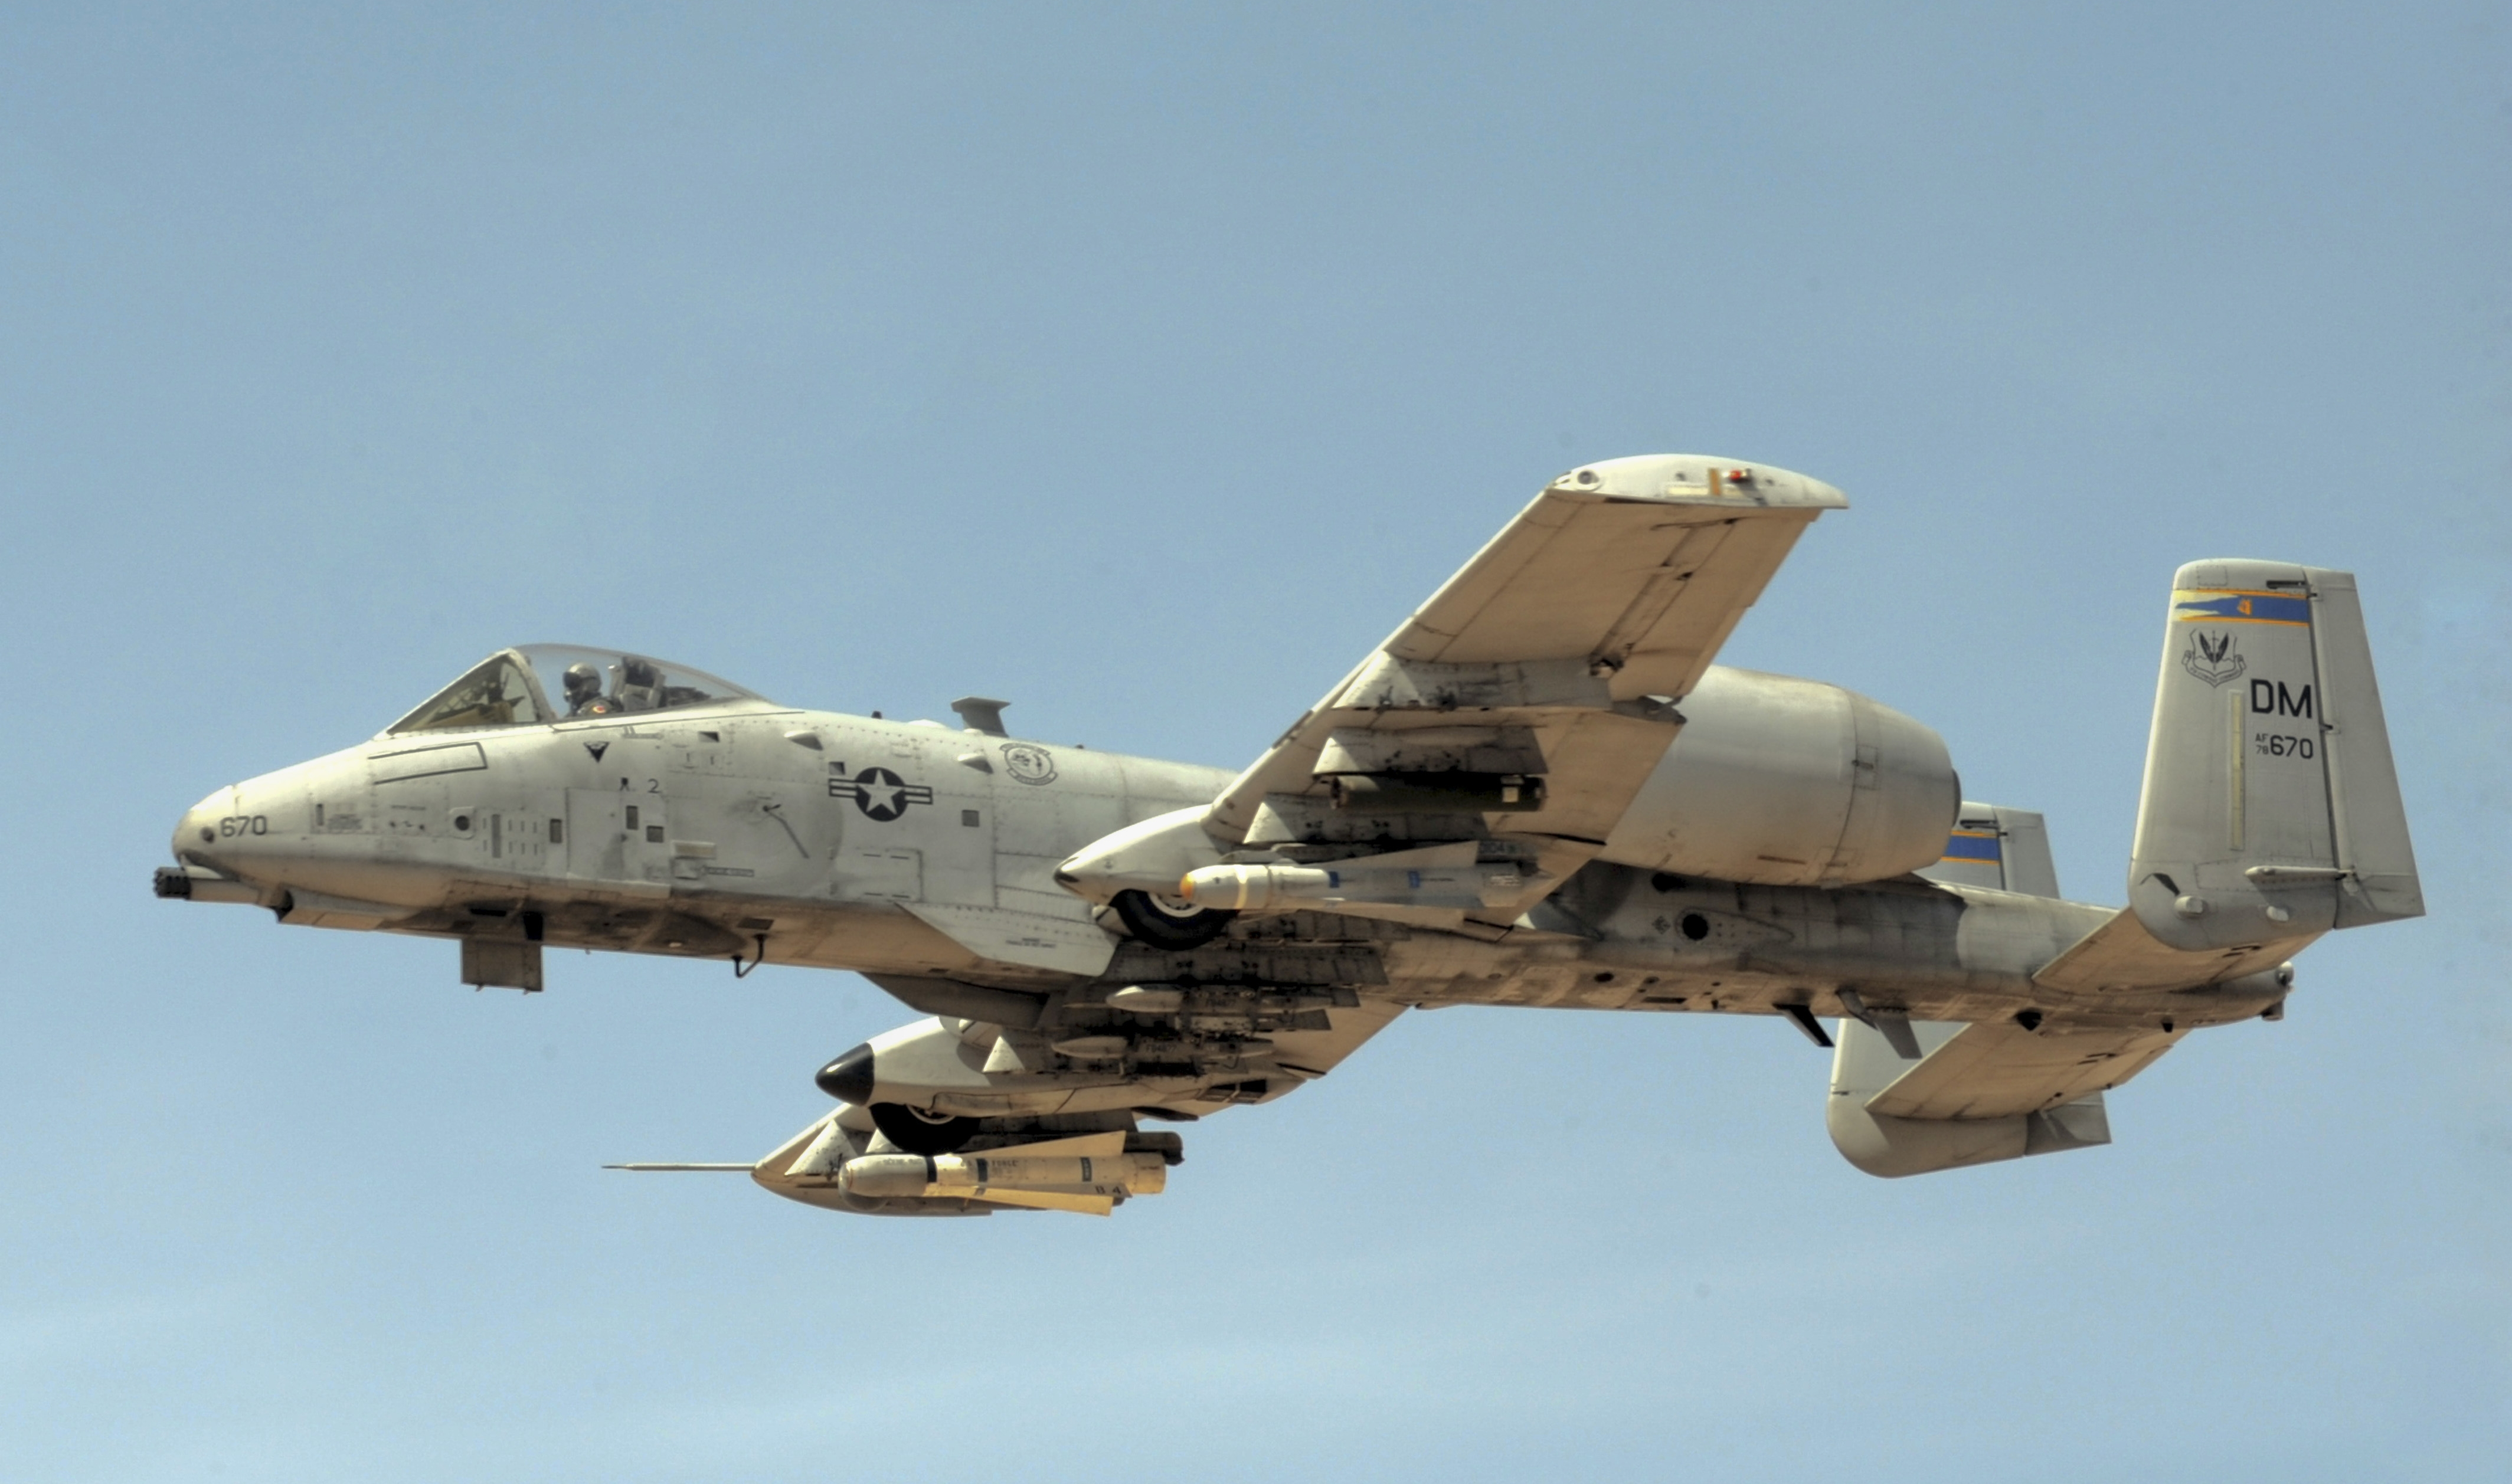 A-10 Thunderbolt from the 354th Fighter Squadron flies through the air during a strafing run at Barry M. Goldwater Air Force Range